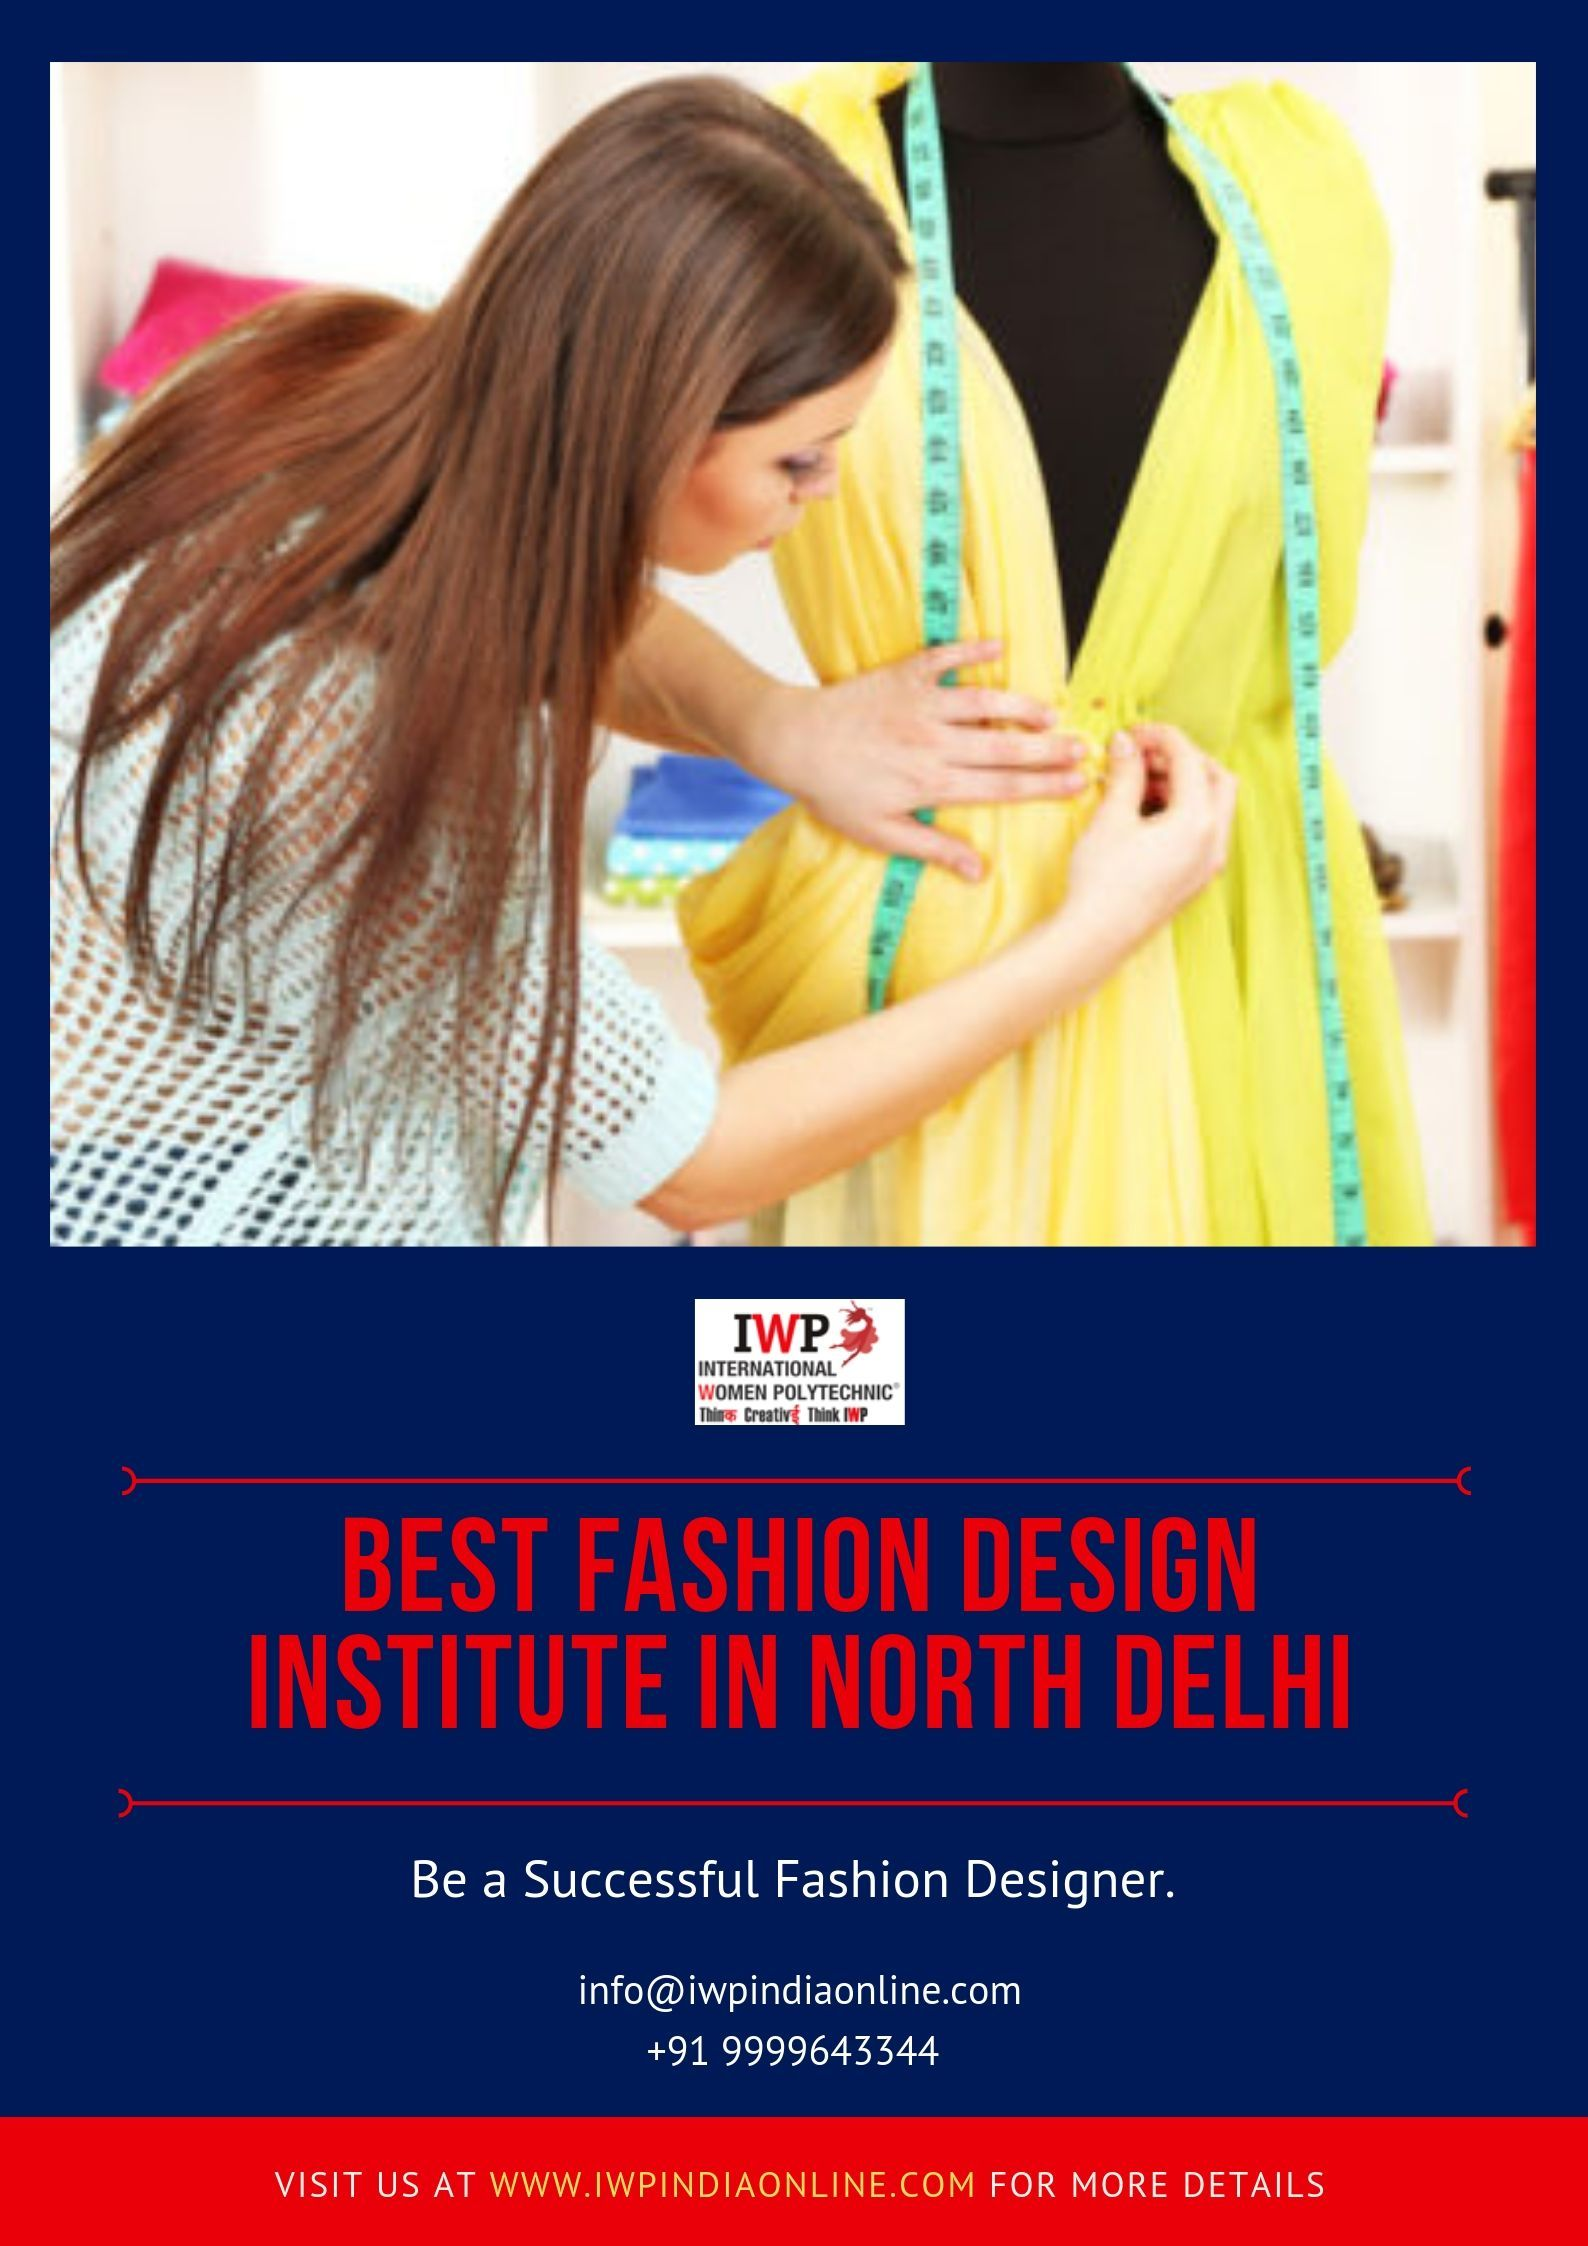 Iwp Is One Of The Best Fashion Design Institute In North Delhi Offering Programs In Fashion Des With Images Fashion Designing Institute Fashion Designing Course Model Town